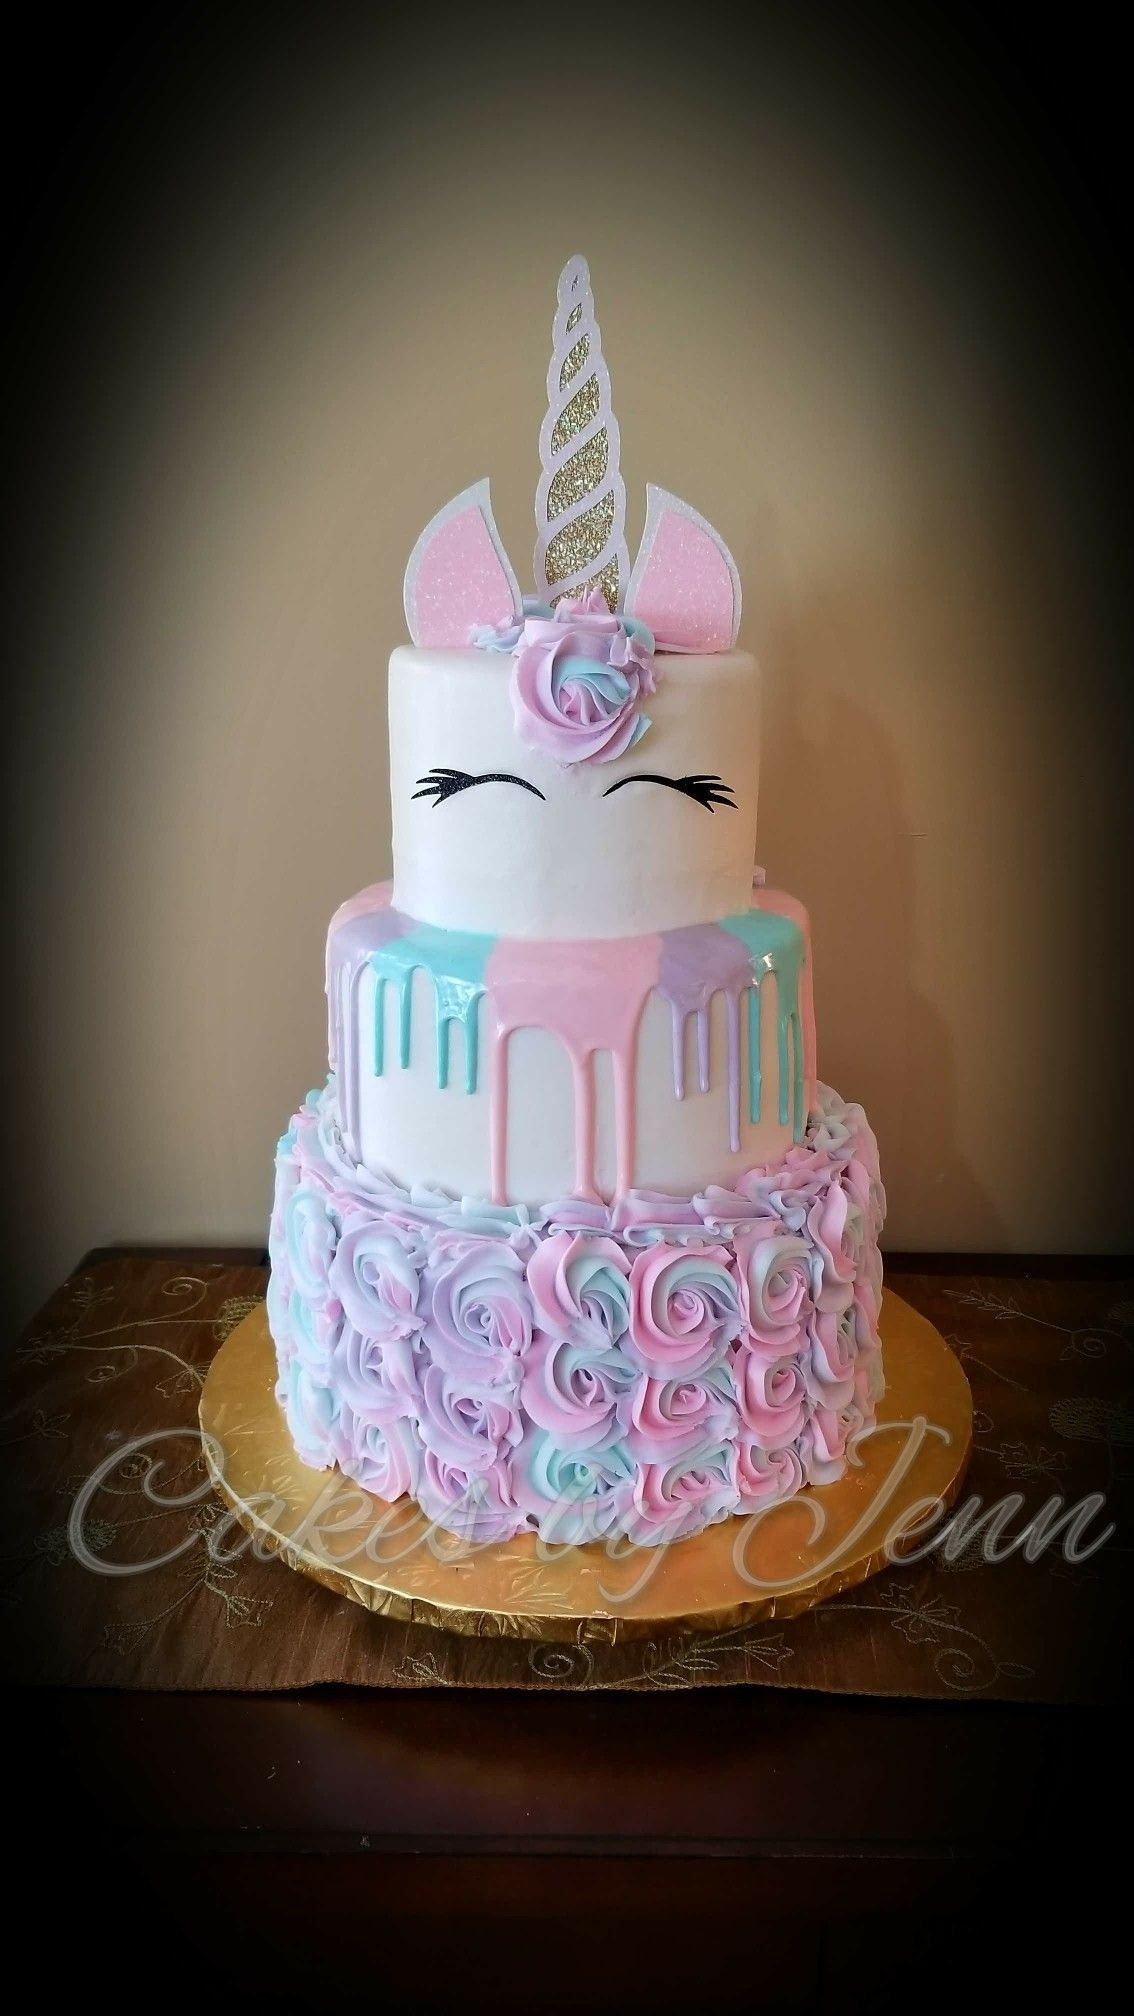 Wonderful cake for a 2 year old girl (With images